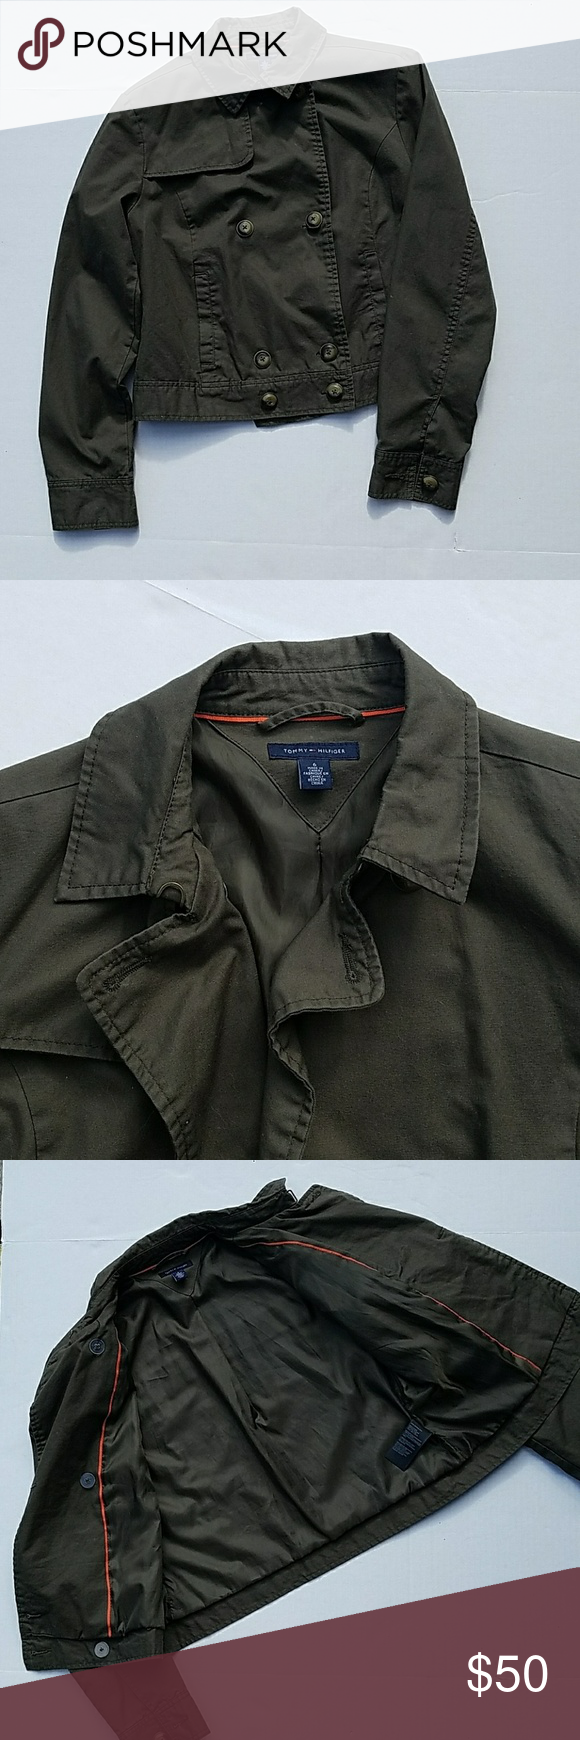 Tommy Hilfiger cropped trench/military style jacke Greenish brown cropped jacket by Tommy Hilfiger. Quality piece. Fully lined.  Doubke breasted. Size 6. EUC. I'm not sure I have even worn this. Tommy Hilfiger Jackets & Coats Utility Jackets